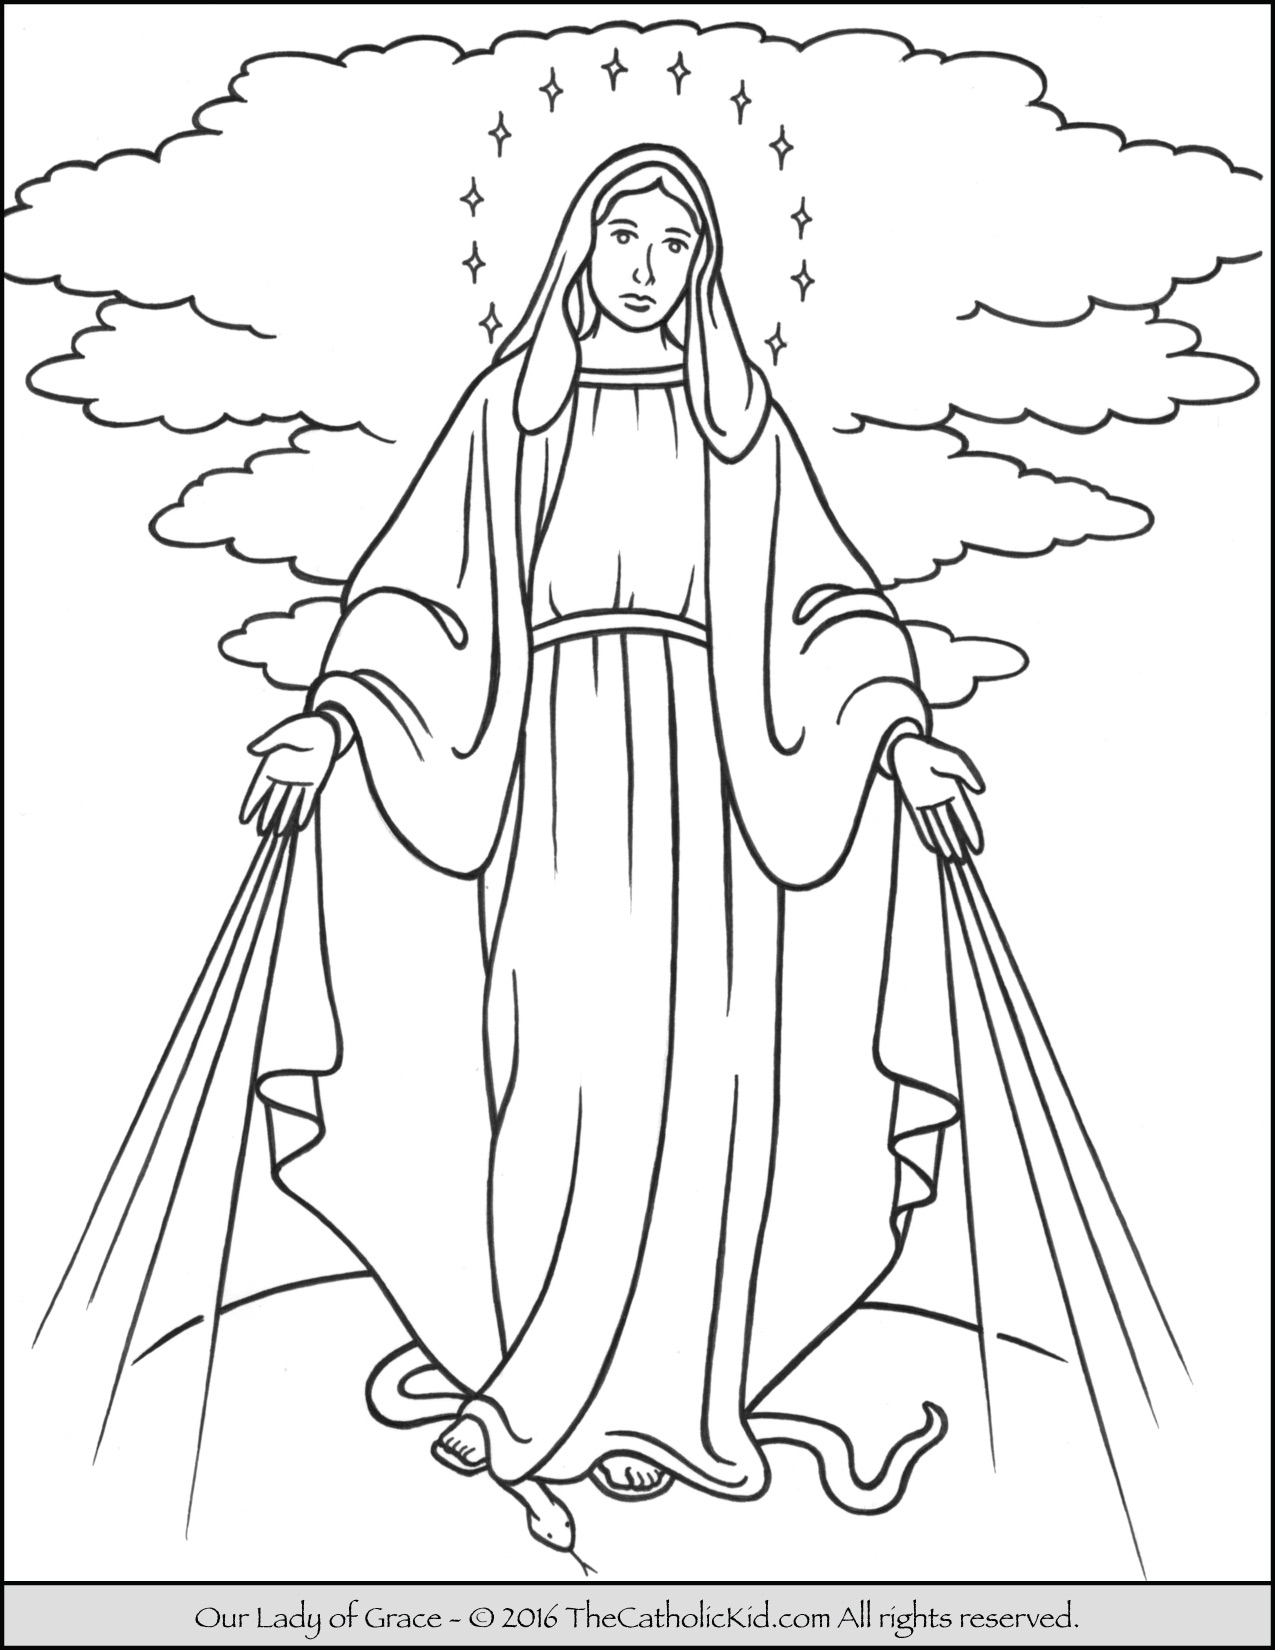 mary coloring pages - our lady of grace coloring page